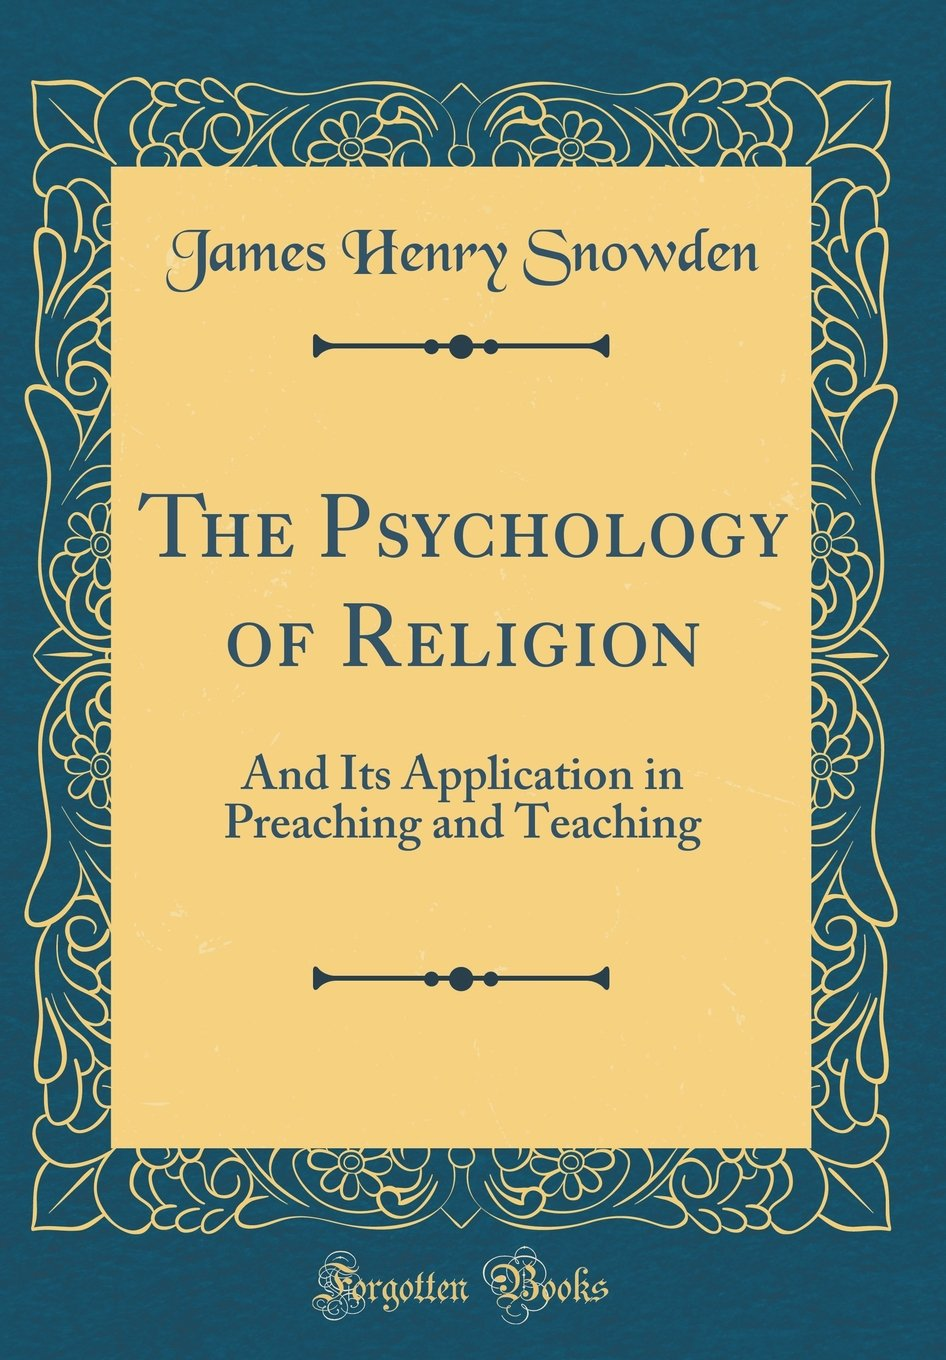 The Psychology of Religion: And Its Application in Preaching and Teaching (Classic Reprint) PDF